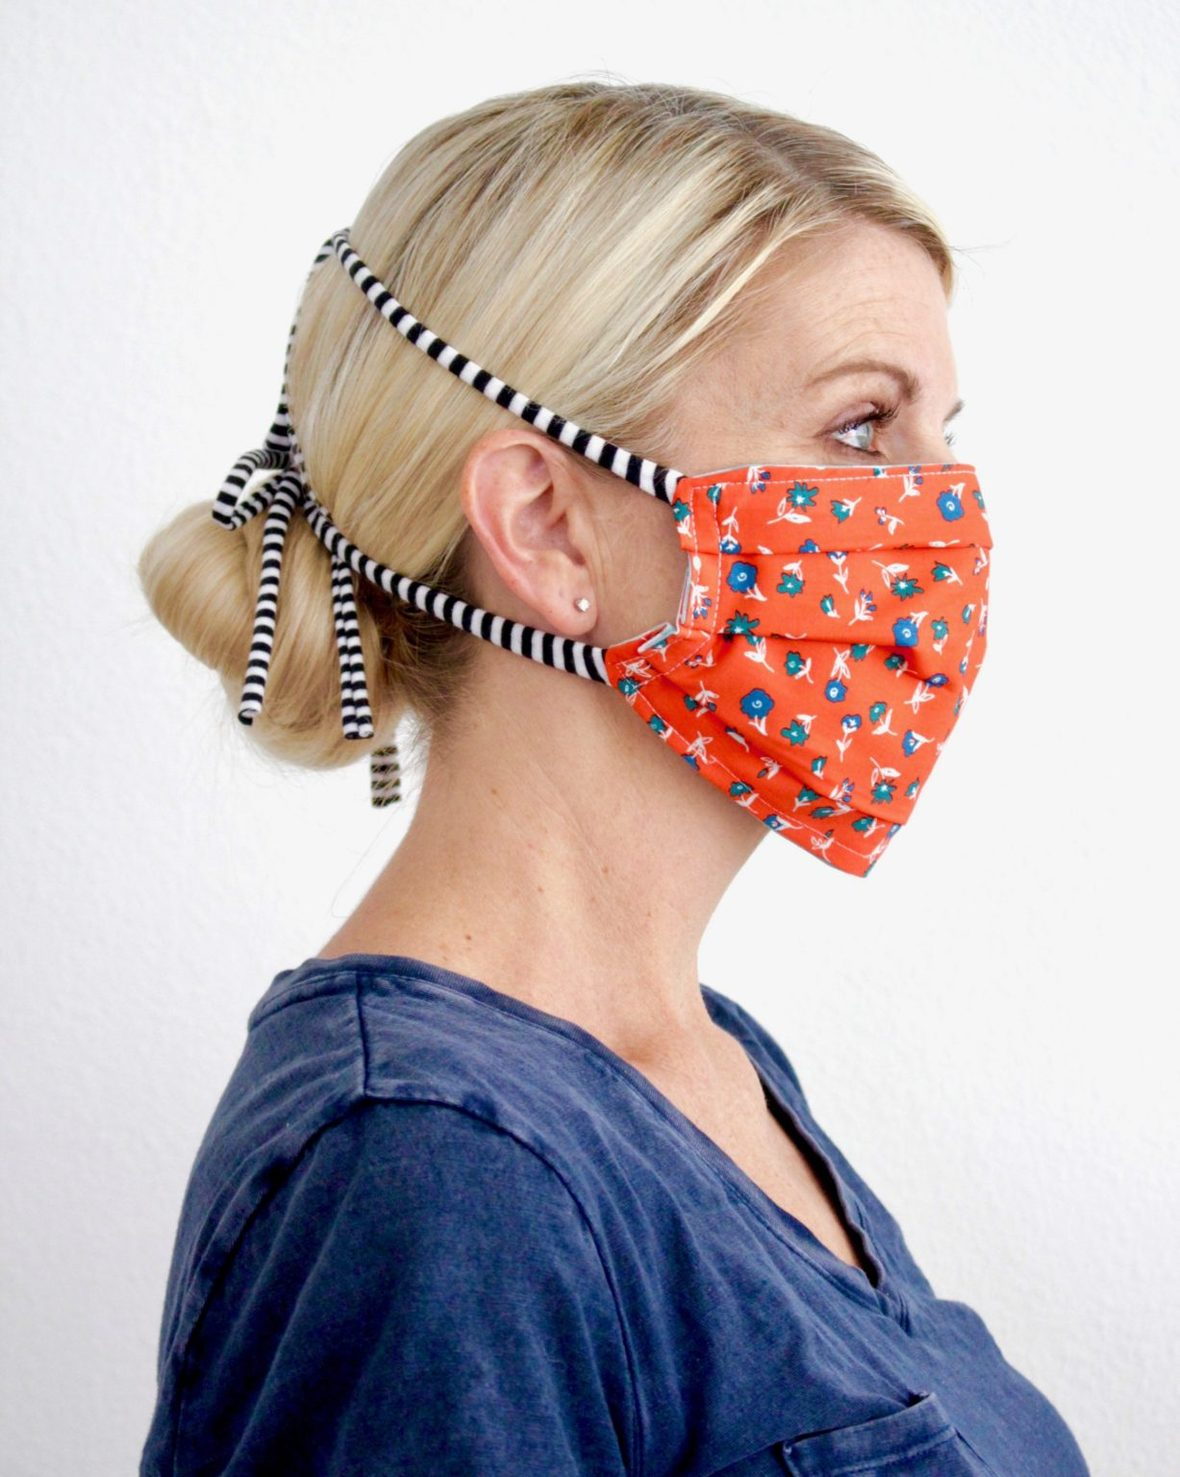 How-to-make-a-face-mask-with-ties-2-1227x1536